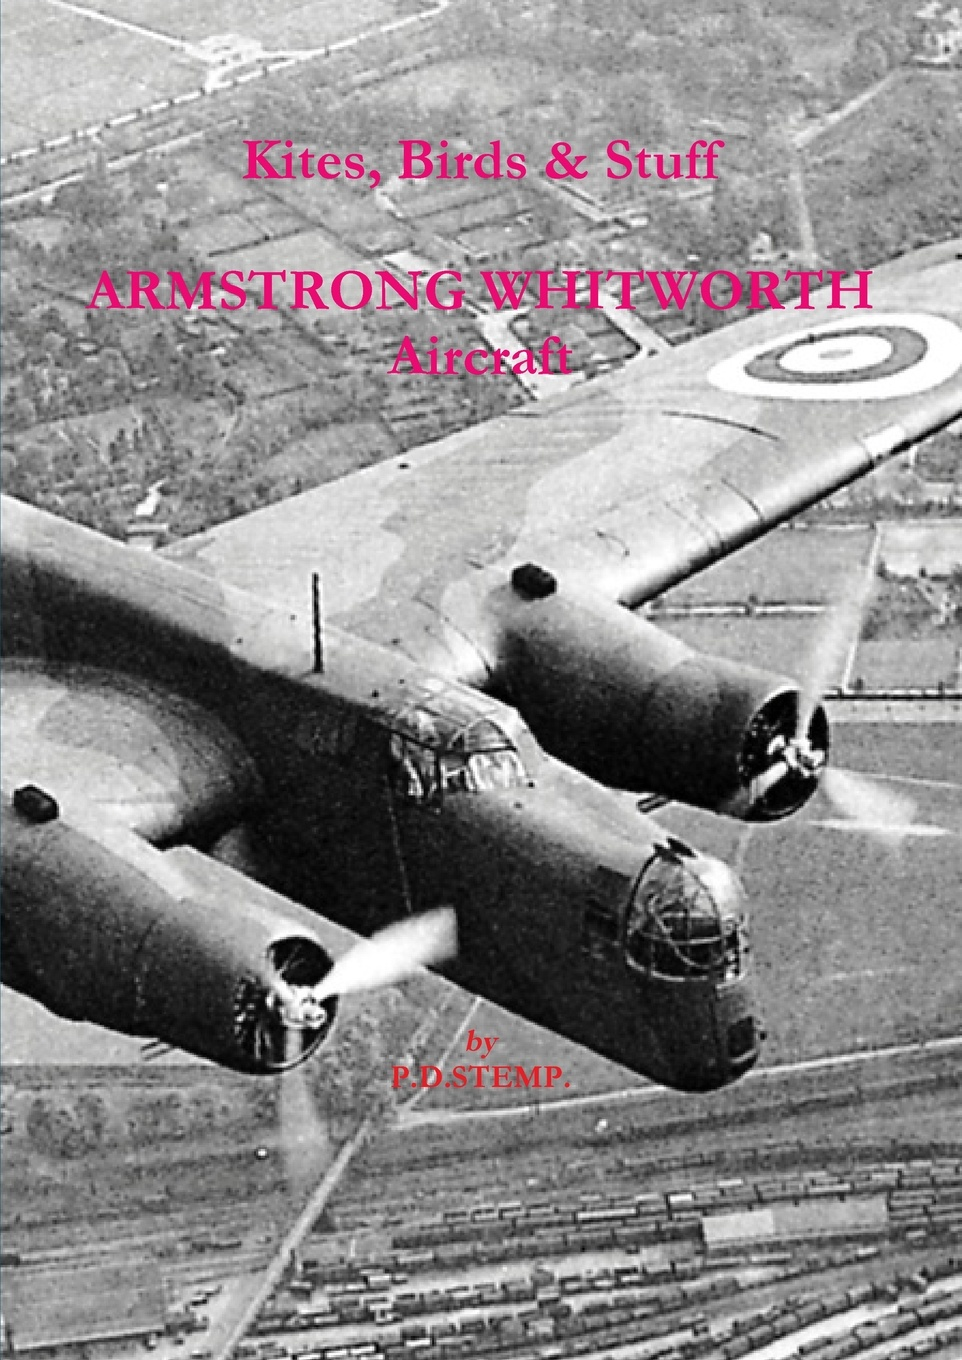 P.D. Stemp #Kites, Birds & Stuff - ARMSTRONG WHITWORTH Aircraft benjamin armstrong early life among the indians reminiscences from the life of benj g armstrong